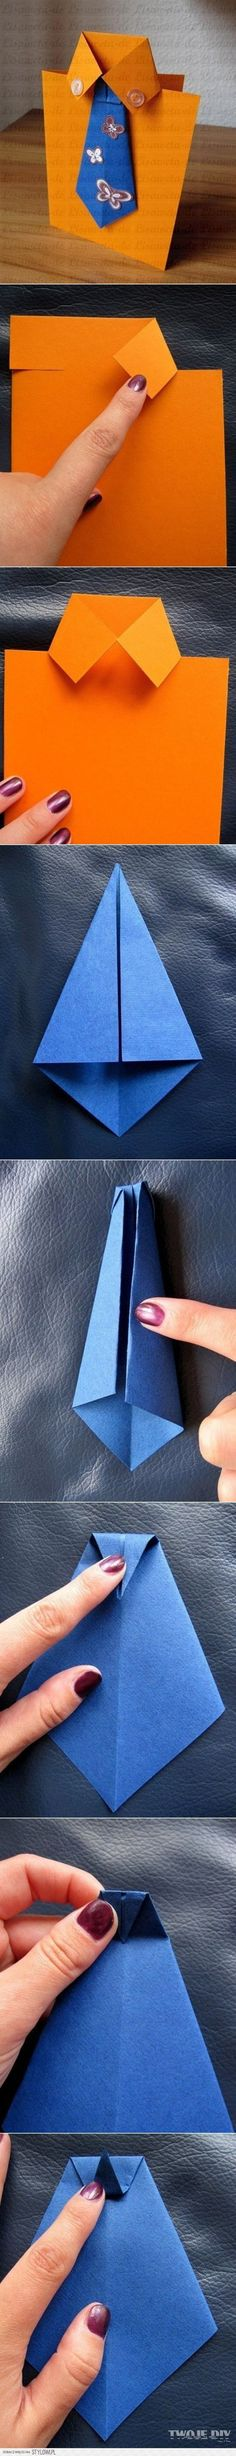 Fathers Day Card Idea: How to make a shirt and tie greeting card cool shirt diy tie diy crafts do it yourself diy projects greeting card Easy Diy Crafts, Crafts For Kids, Arts And Crafts, Paper Crafts, Card Crafts, Craft Kids, Diy Father's Day Cards, Men's Cards, Father's Day Diy